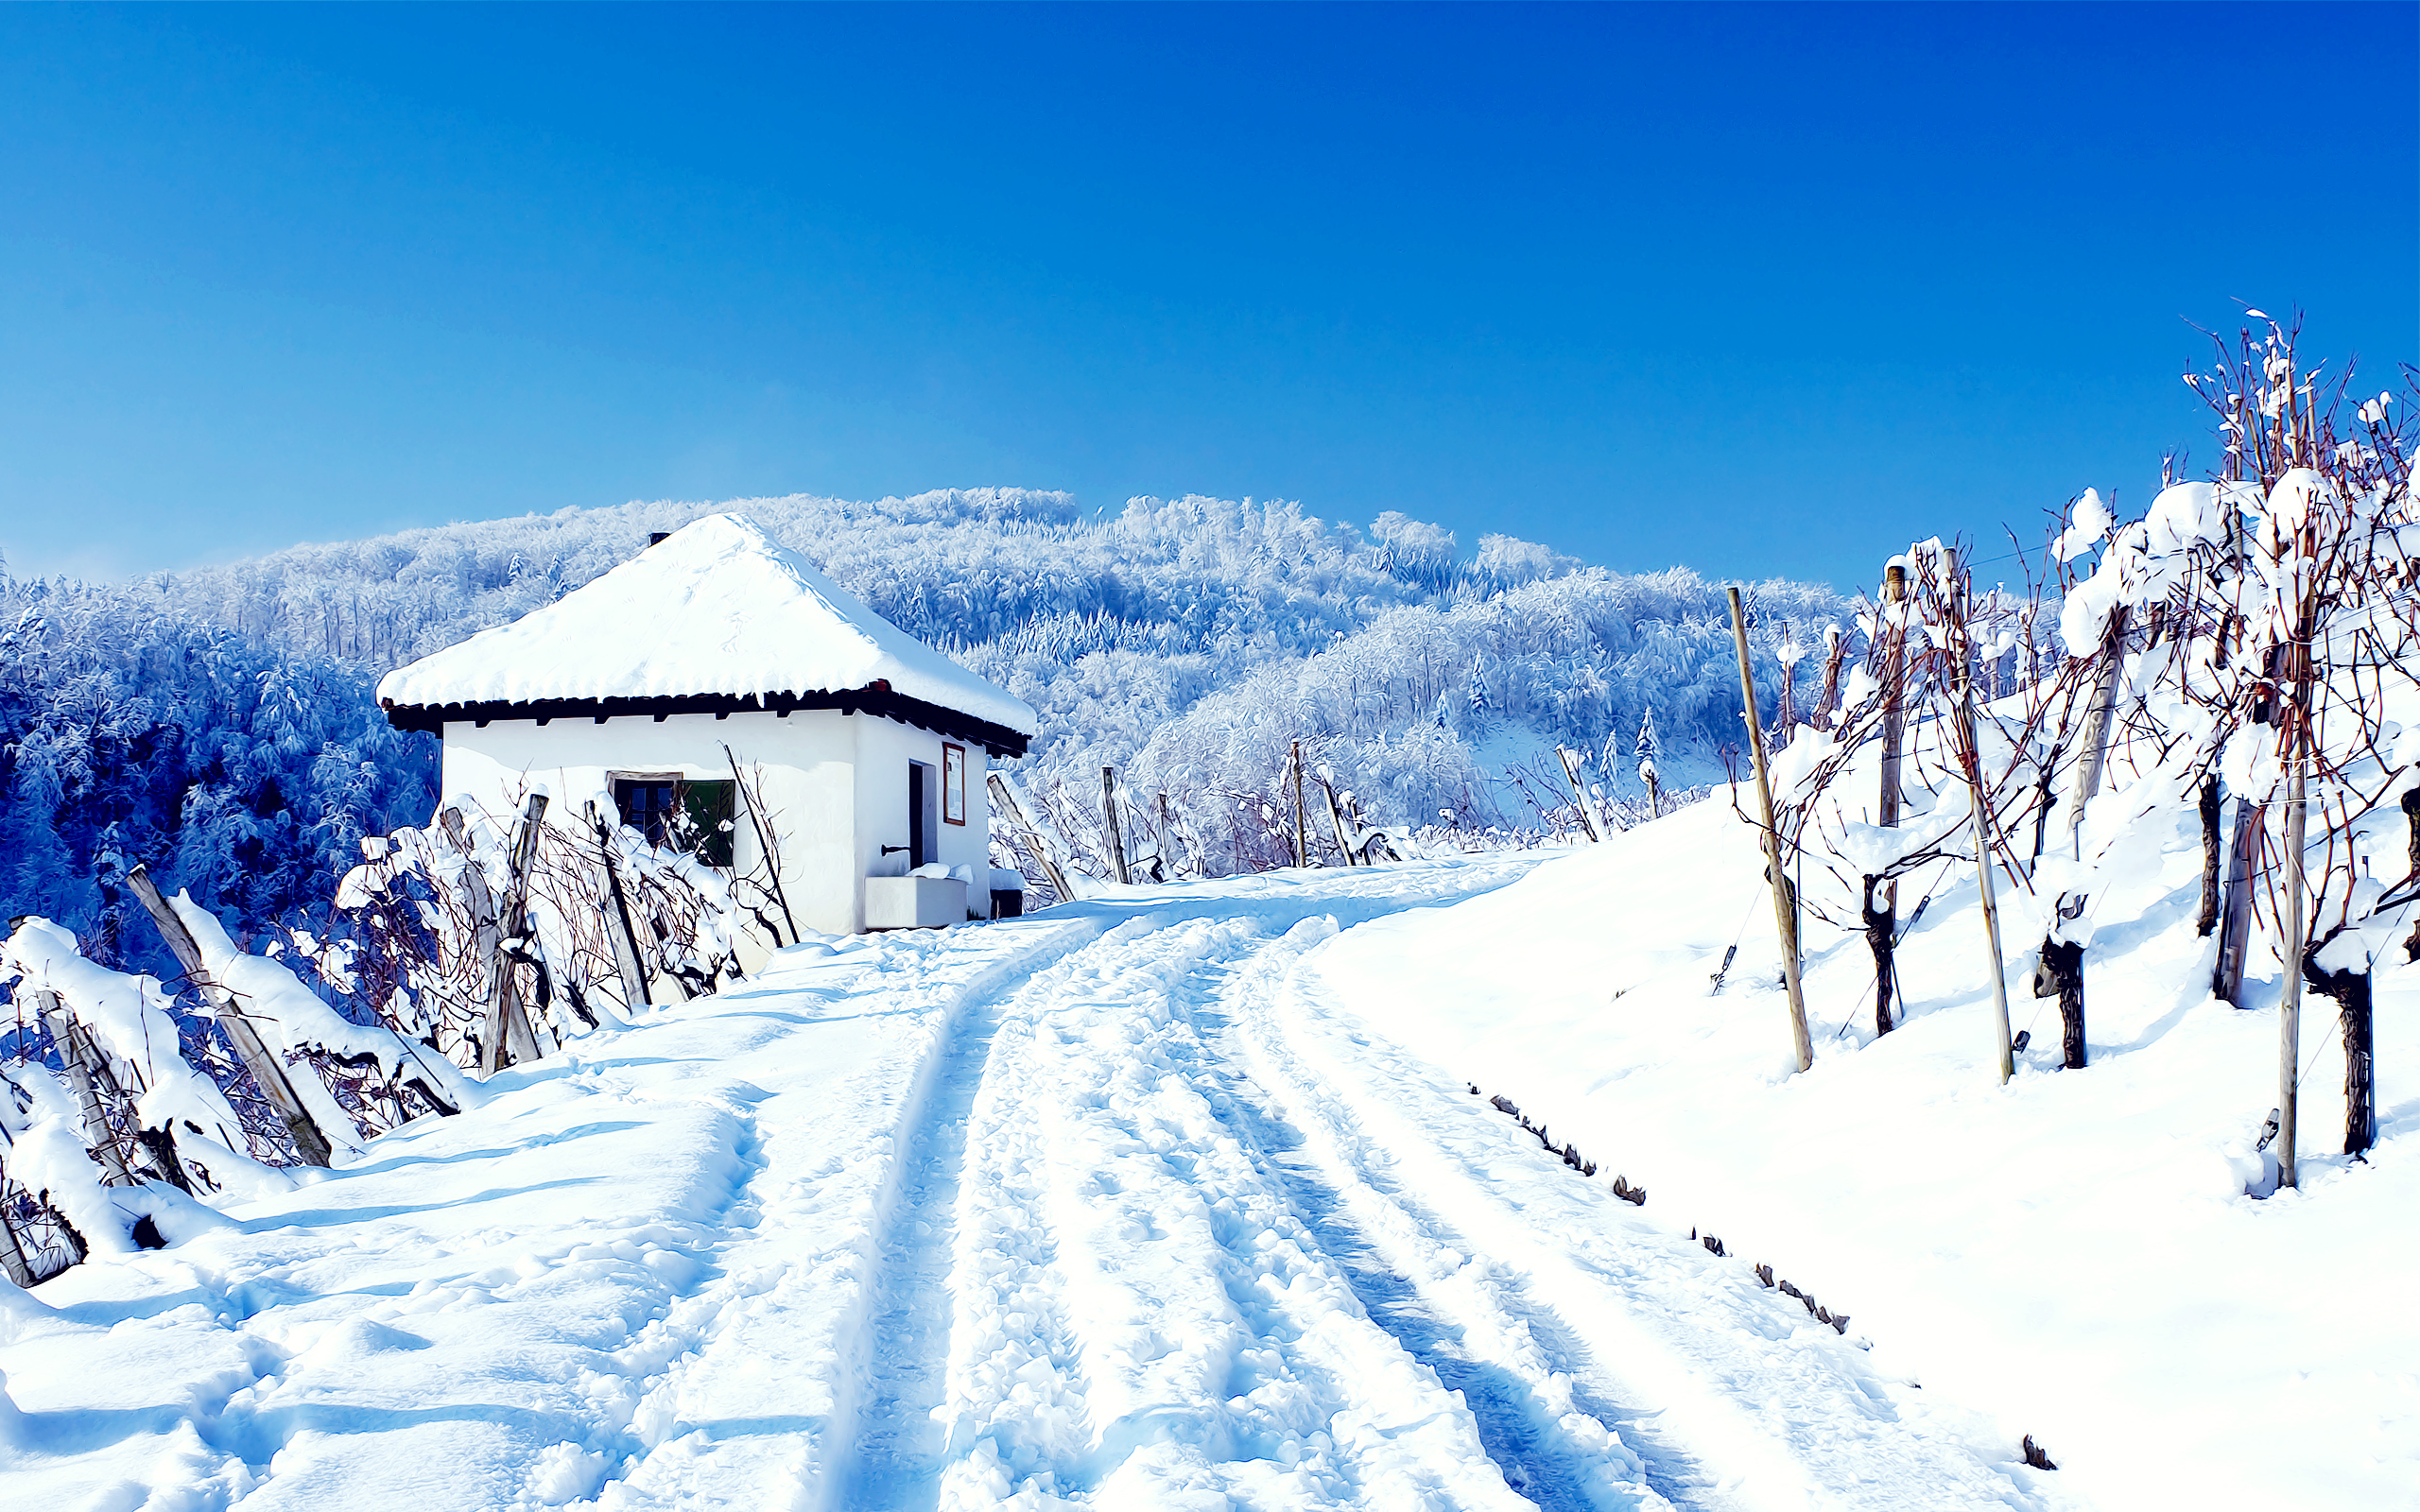 HD Wallpapers Snowy Cottage